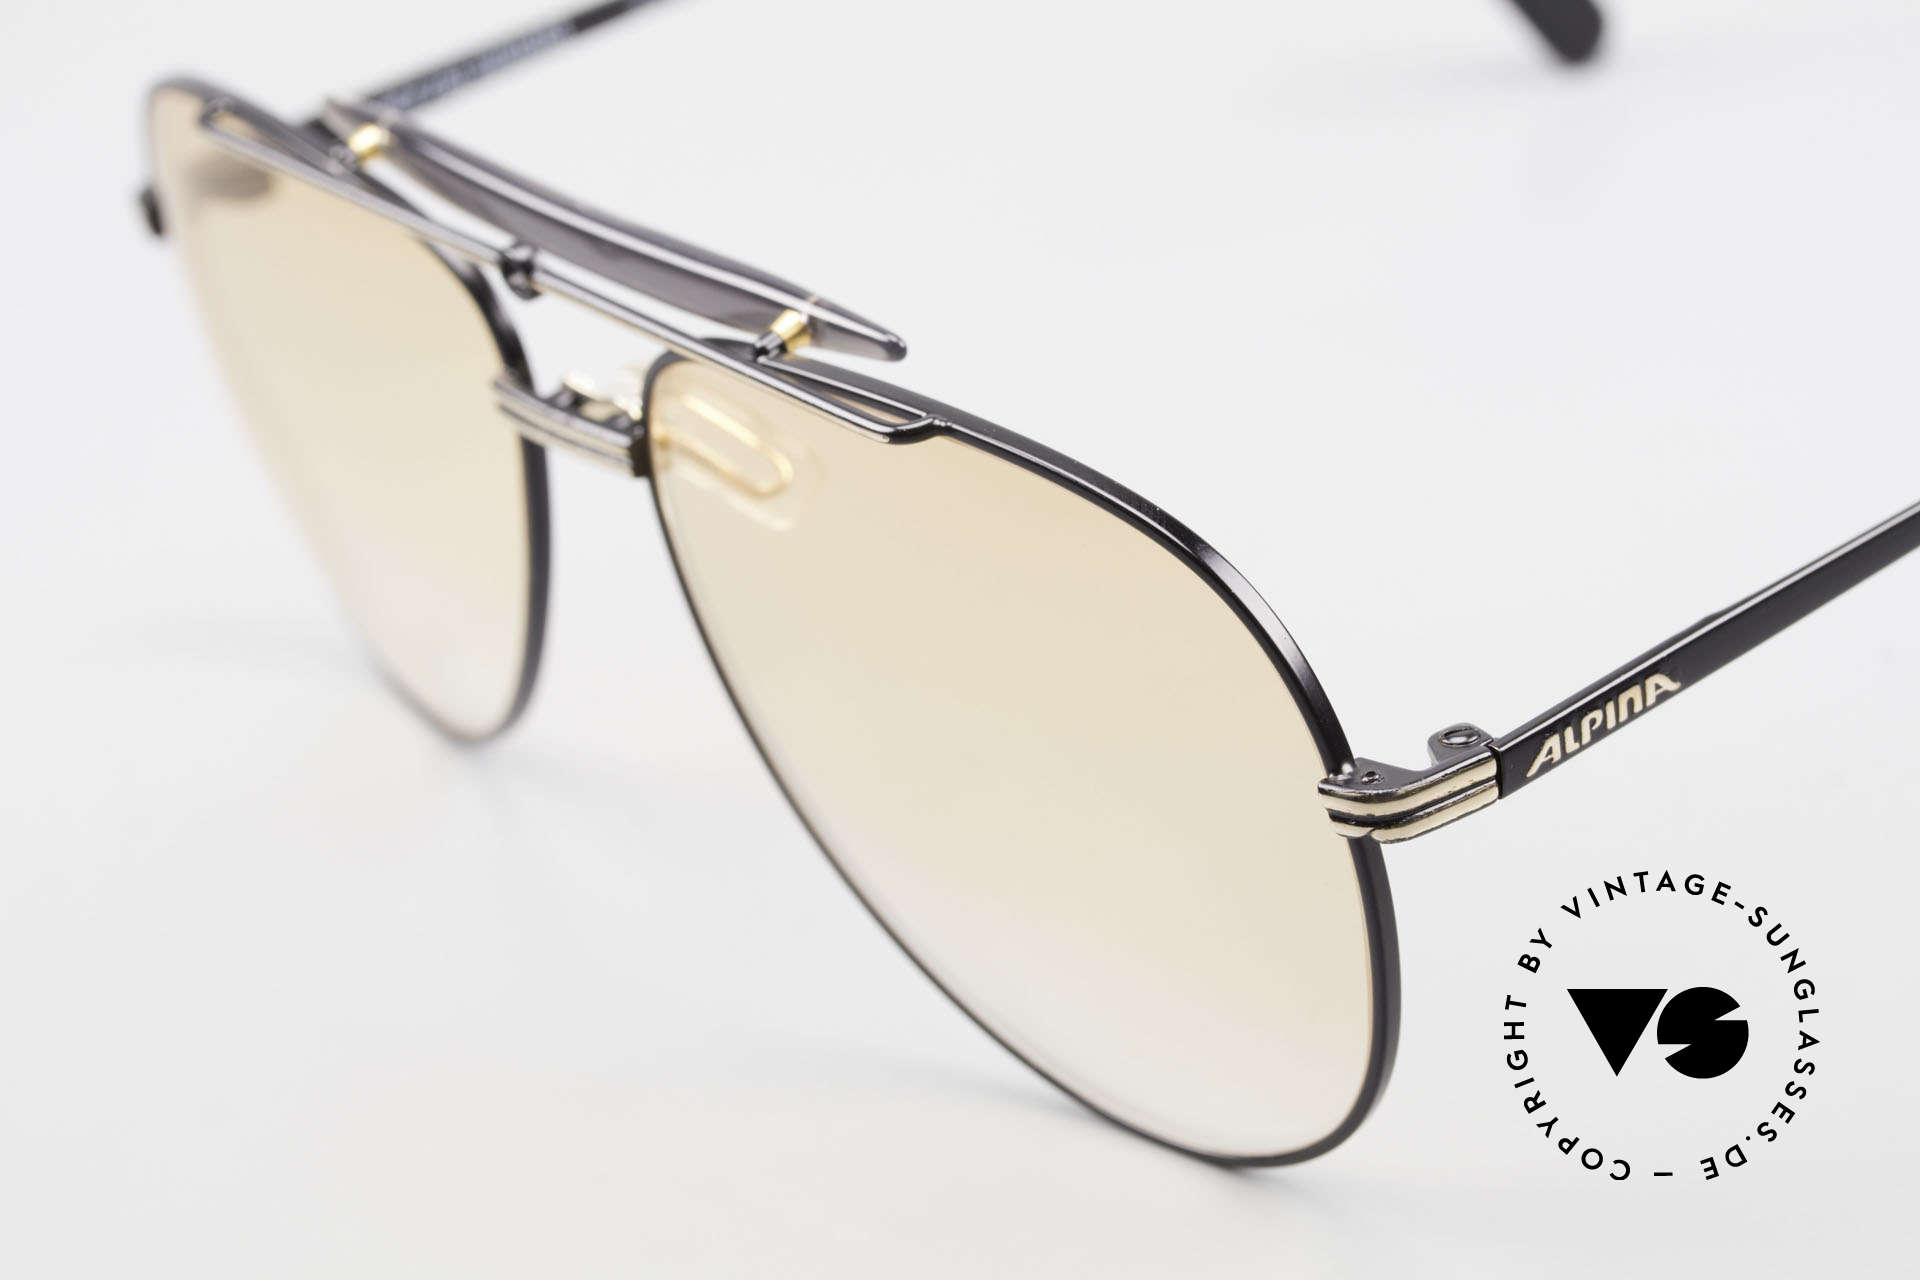 Alpina PCF 250 Sporty 90's Aviator Sunglasses, unworn (like all our vintage ALPINA sunglasses), Made for Men